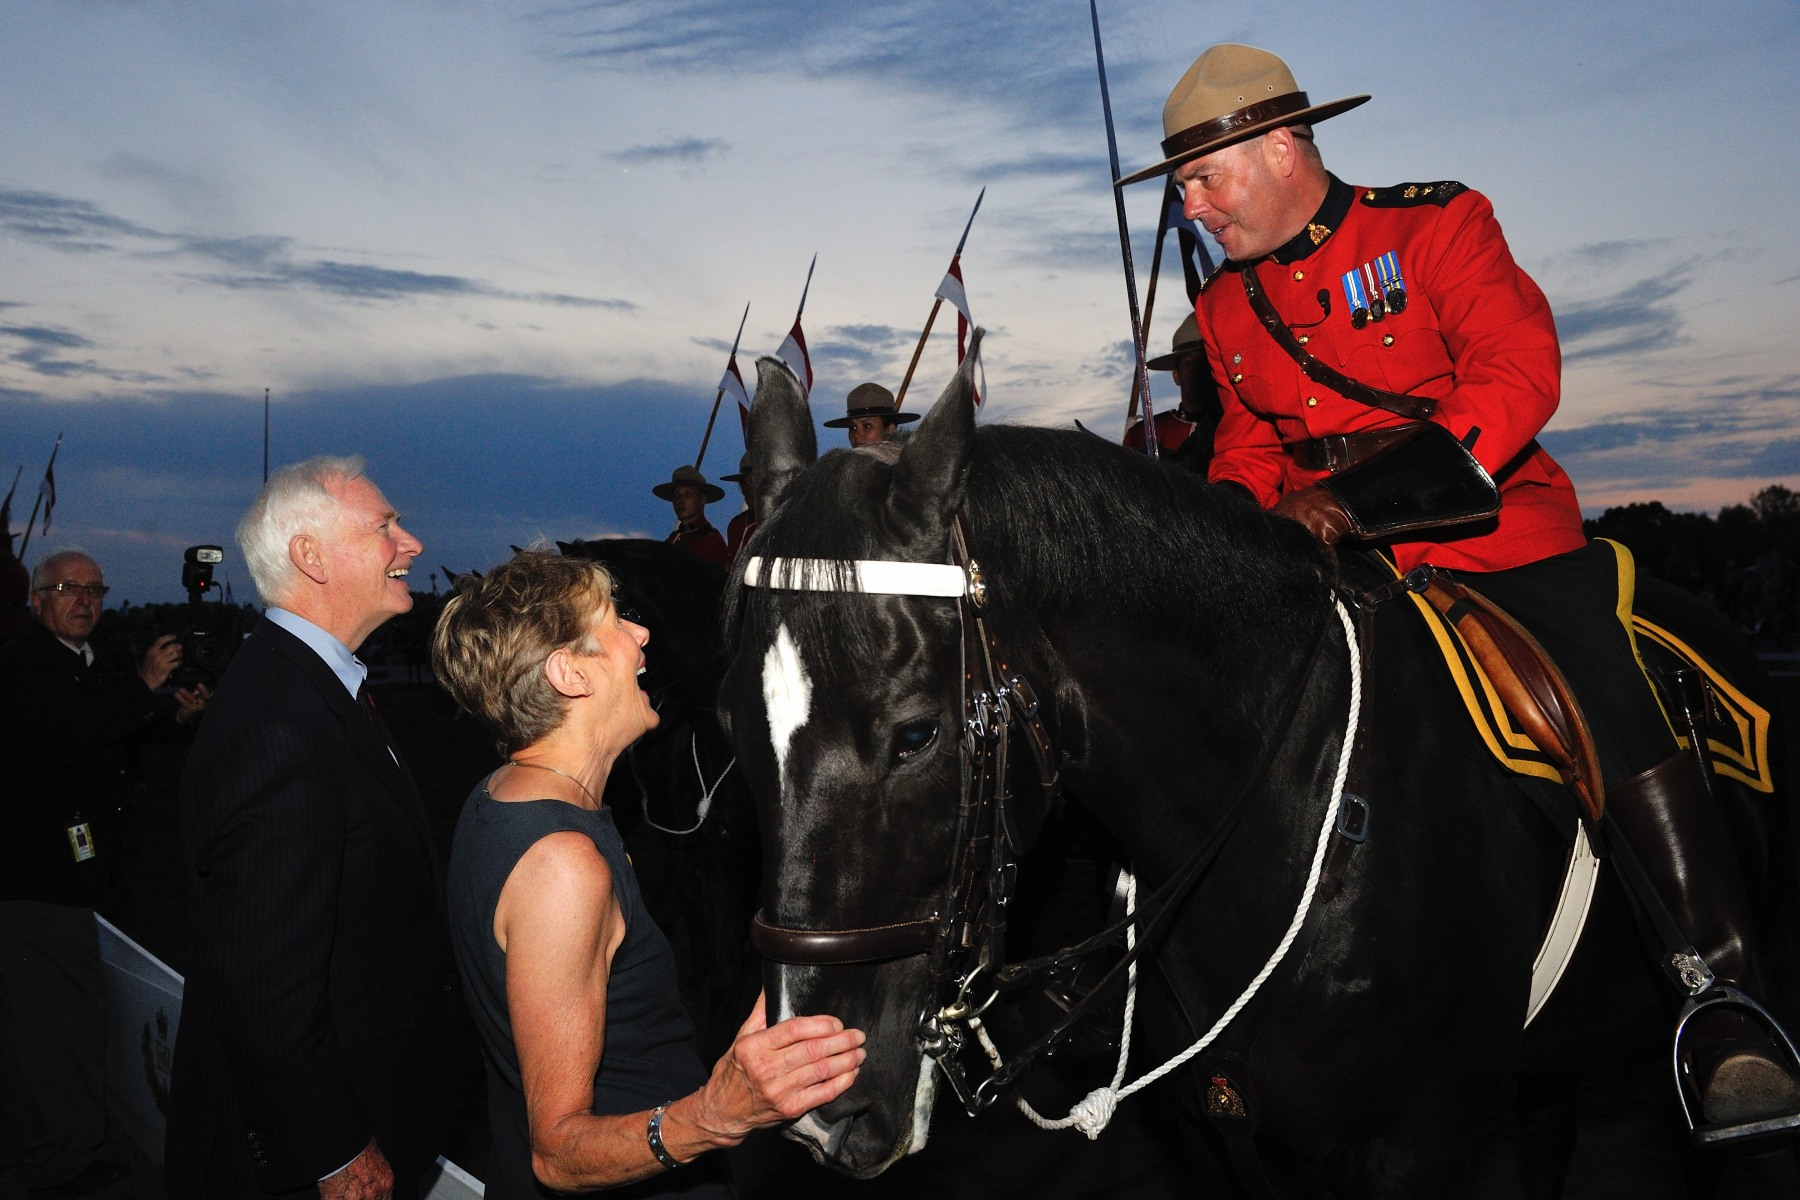 Their Excellencies congratulated Superintendent Marty Chesser on the Musical Ride's spectacular performence.